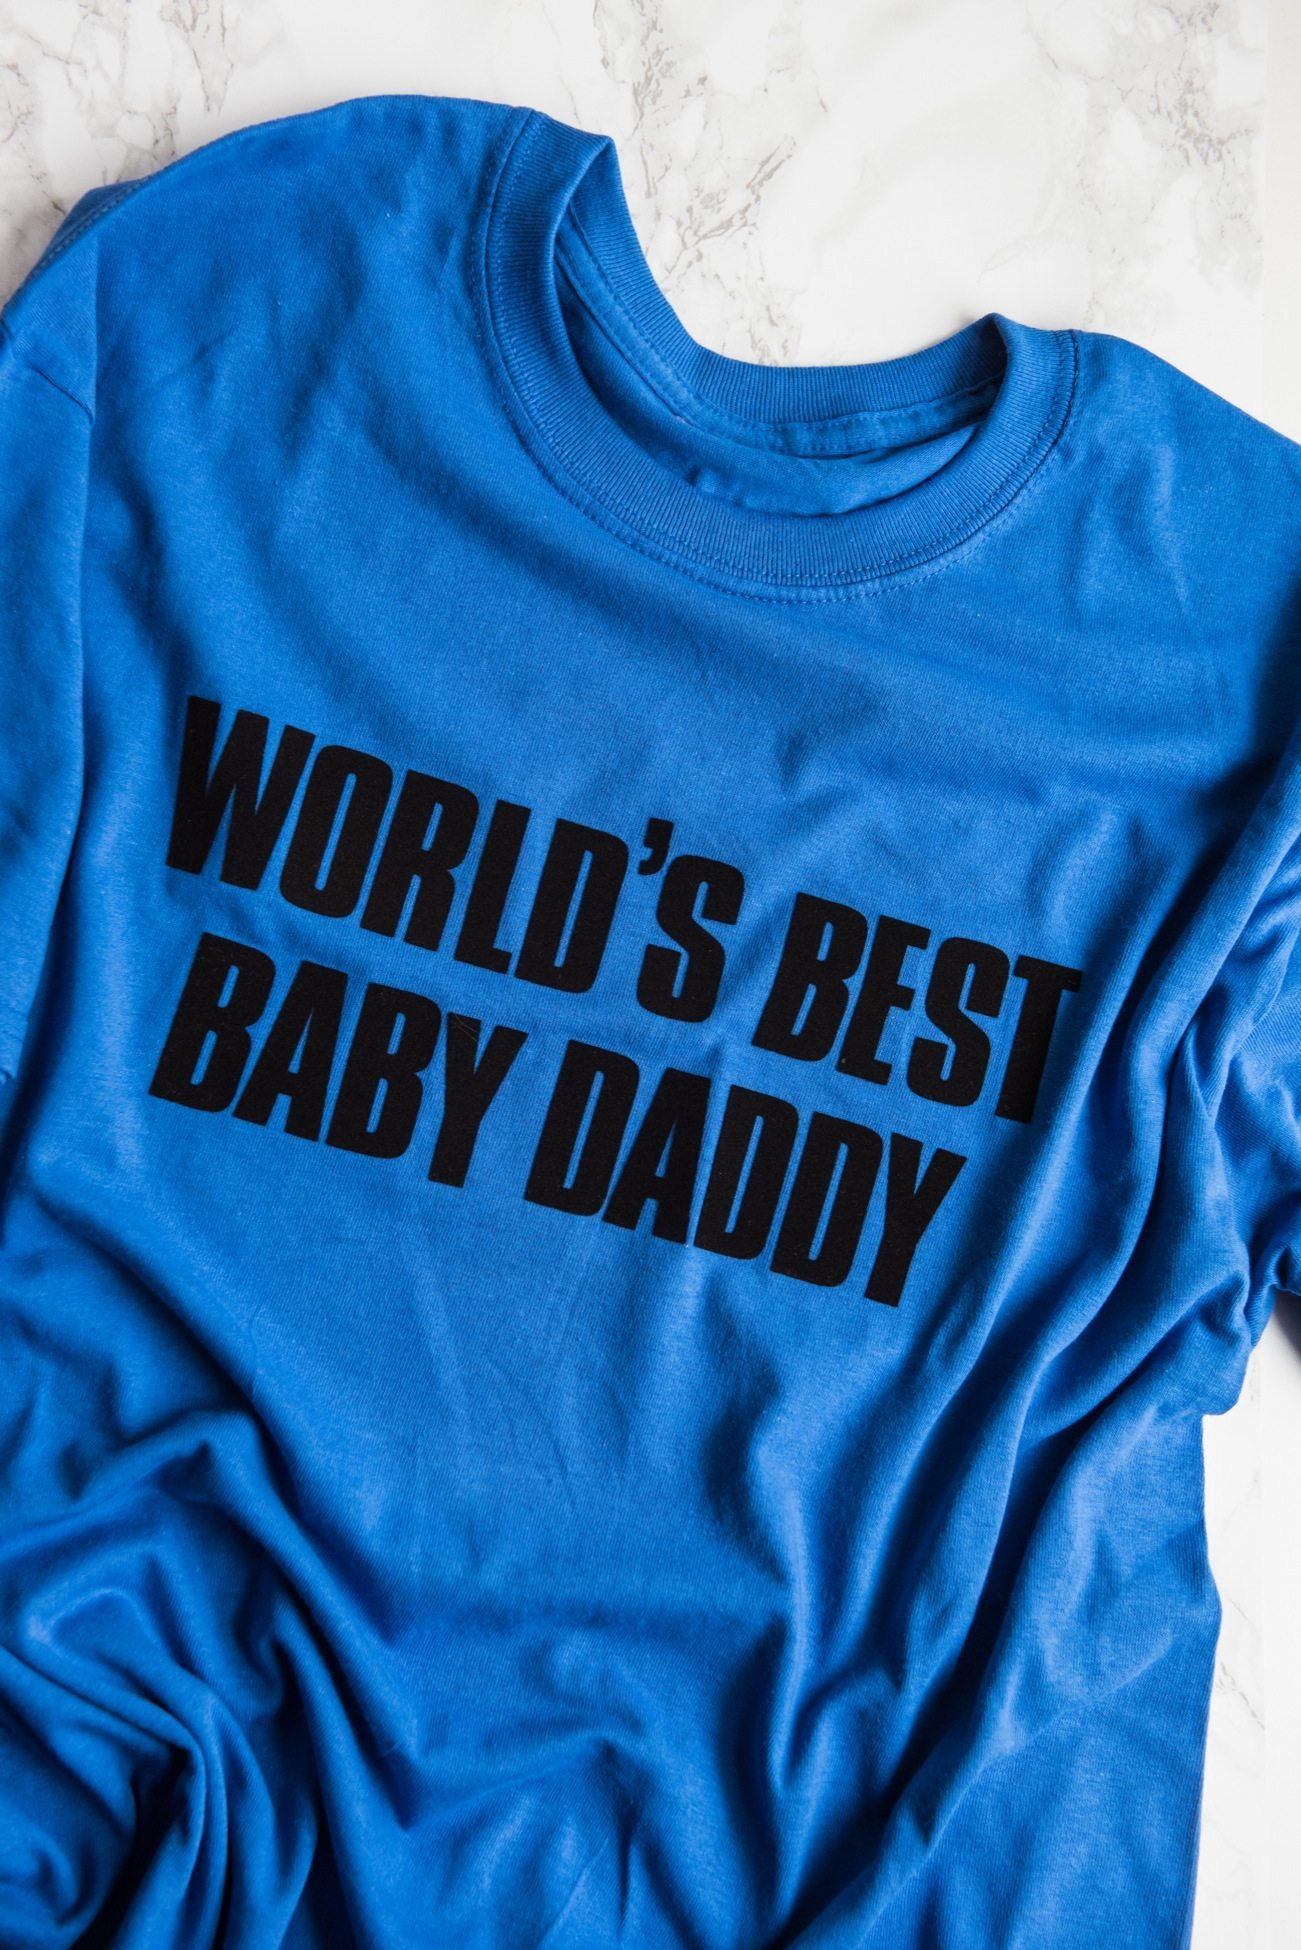 DIY Graphic Father's Day Shirts from @cydconverse